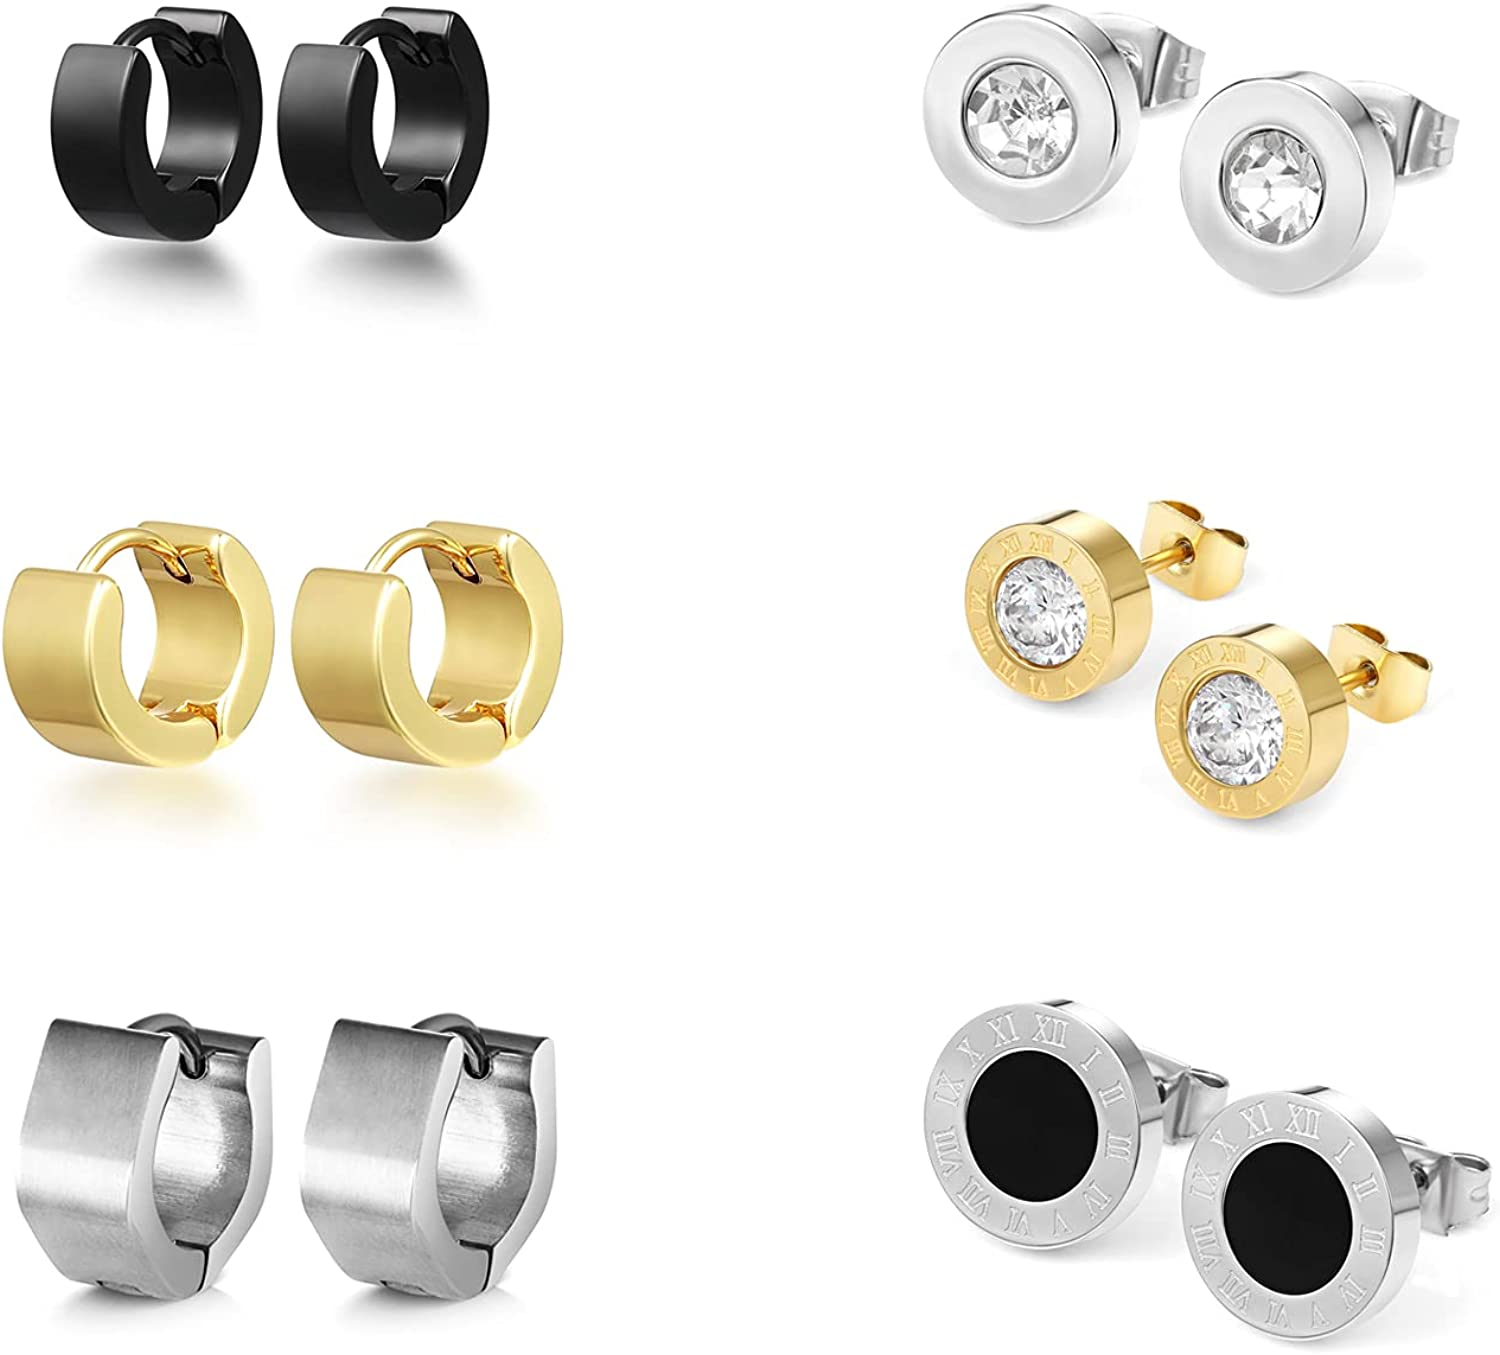 LaSua - 6 Pairs Stainless Steel Earrings - Set of Studs and Hoop, Black White Cubic Zirconia Studs- Solid Polished Square Classic Earrings for Men and Women